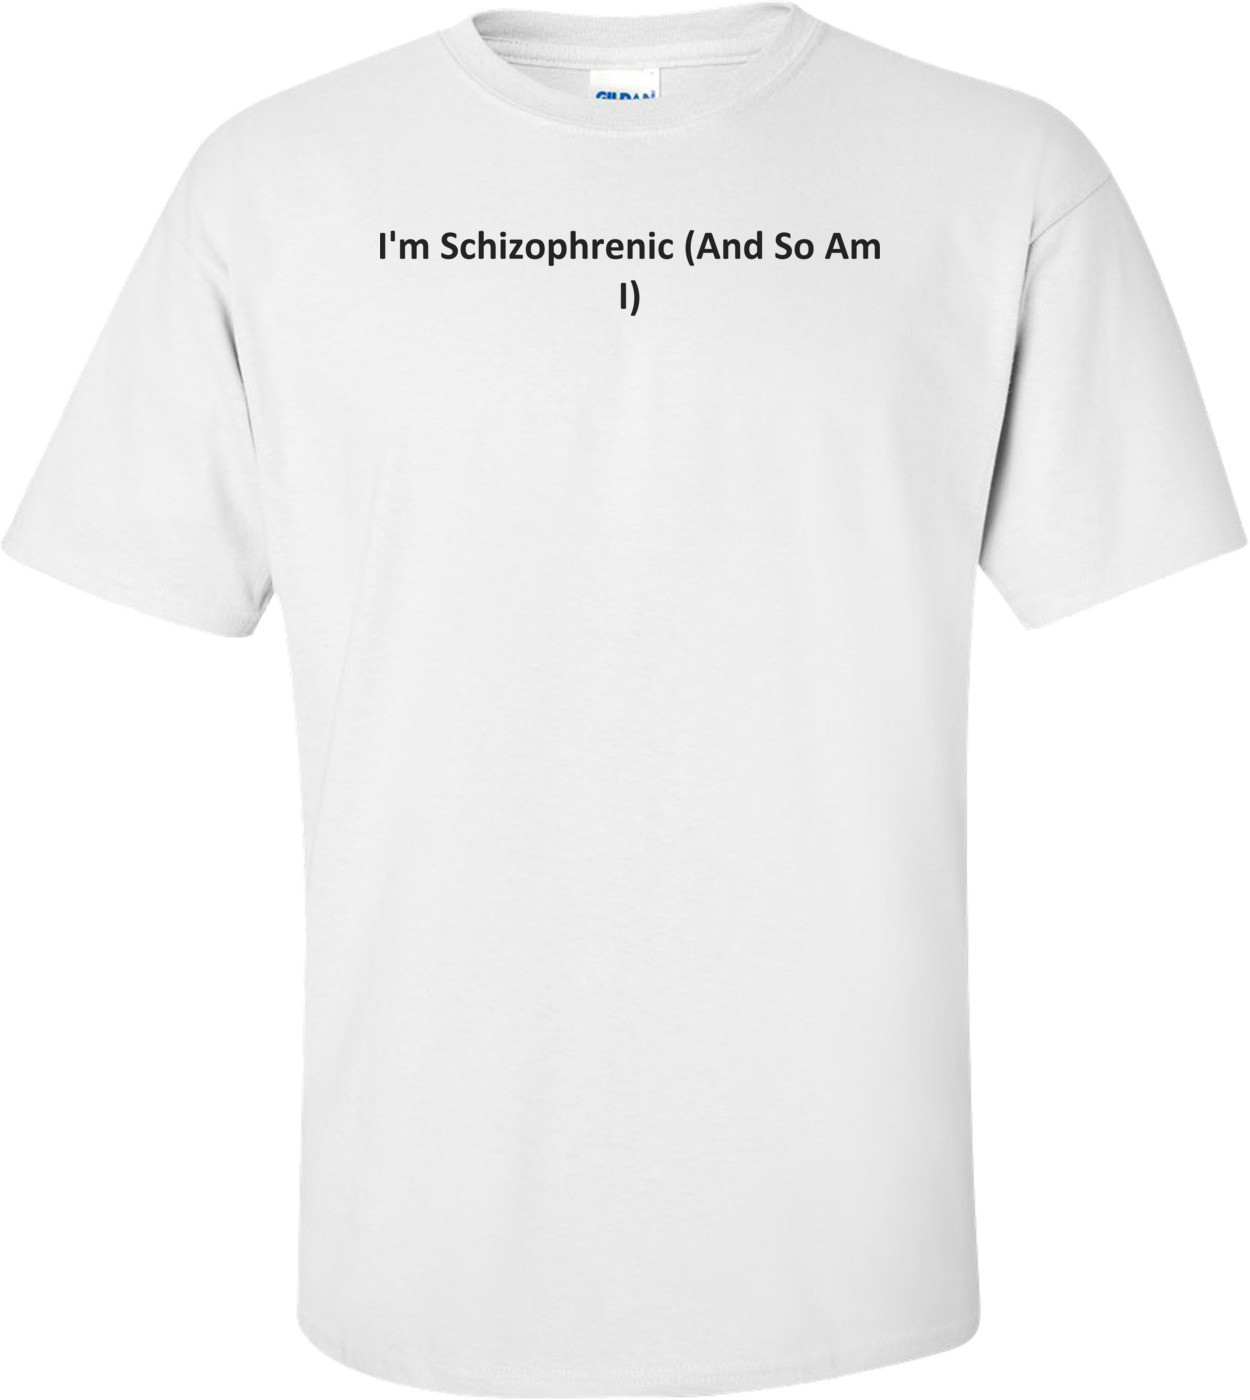 I'm Schizophrenic (And So Am I) T-Shirt